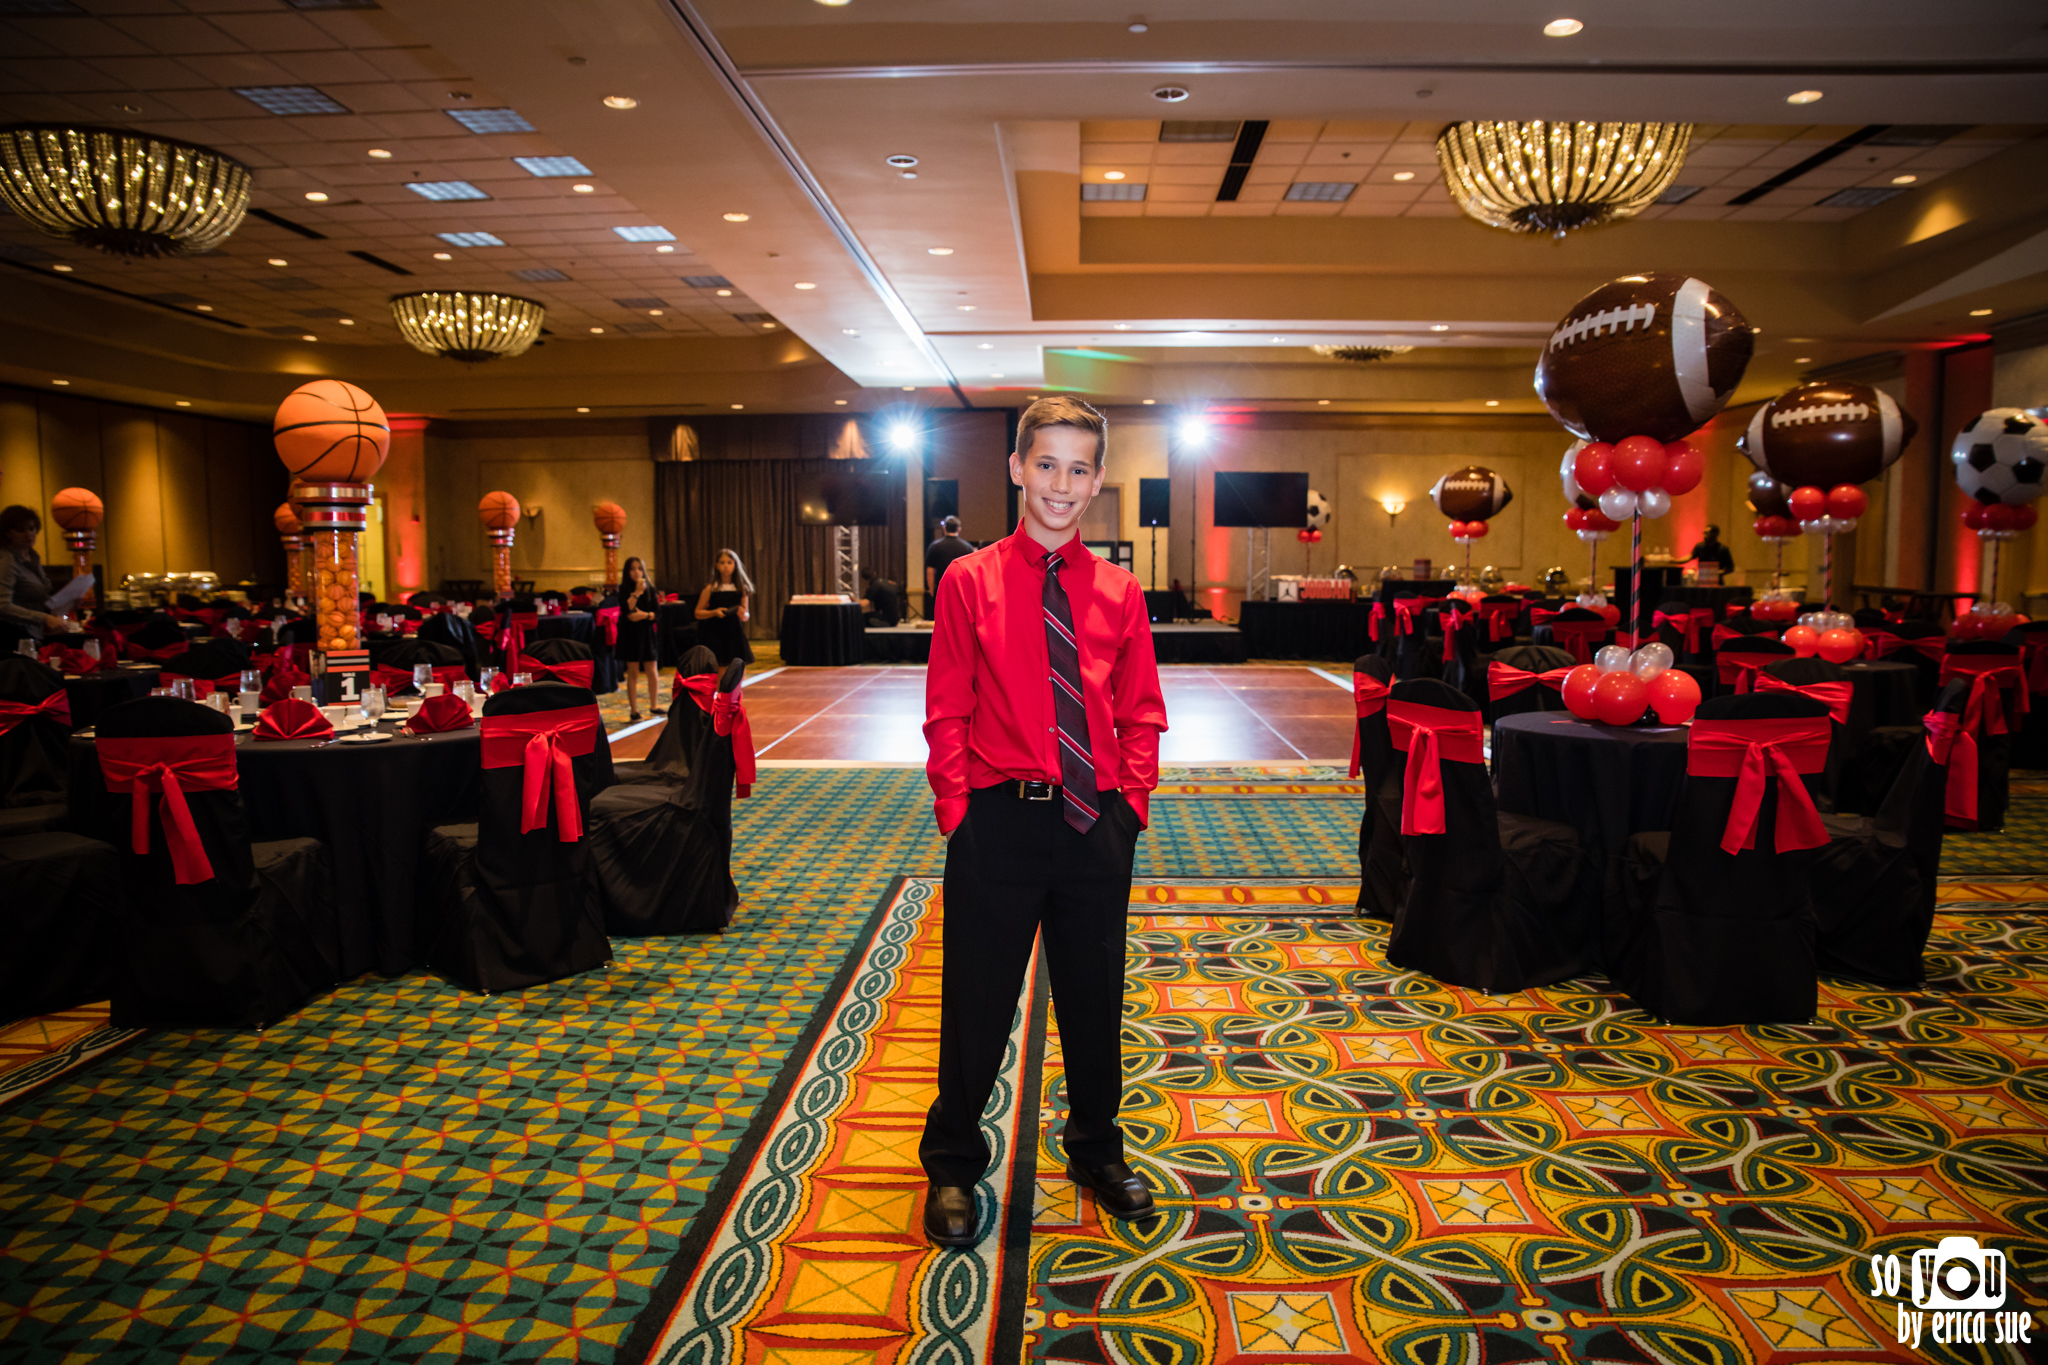 bar-mitzvah-photographer-parkland-fl-marriott-6297.jpg